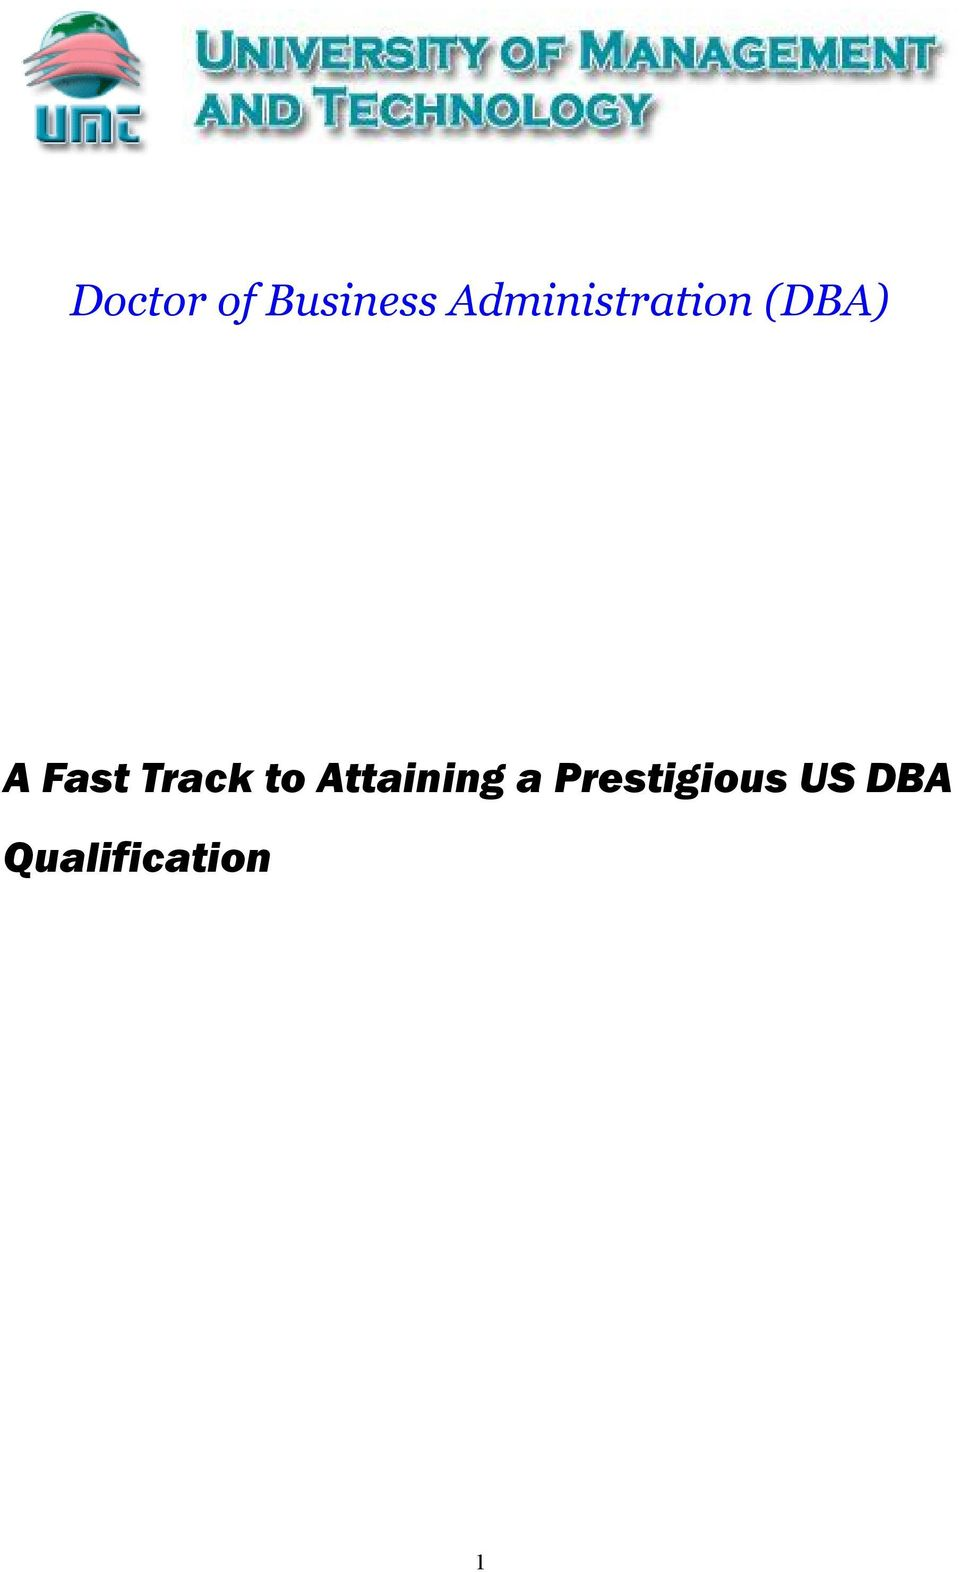 Fast Track to Attaining a